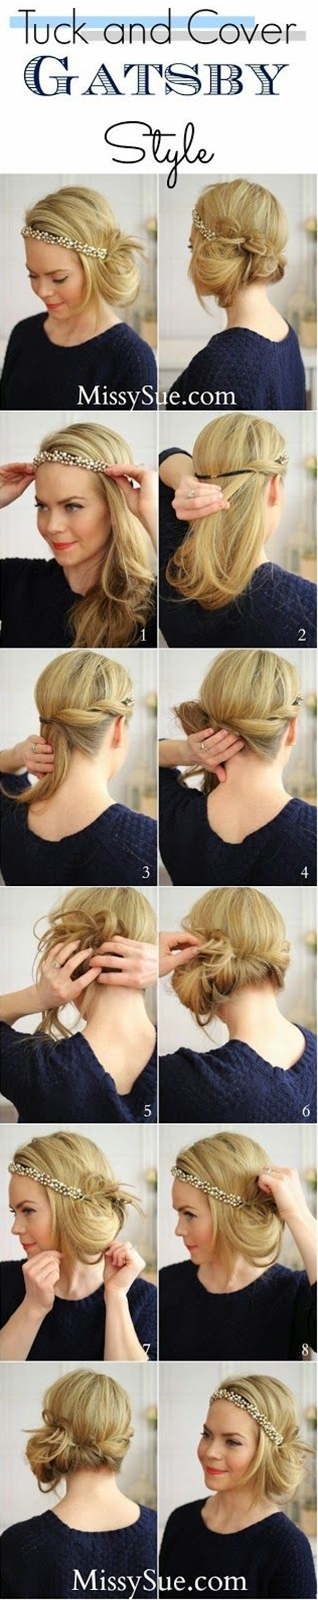 Tried this and I loved it as we'll as all my coworkers! Deff a quick but cute updo.